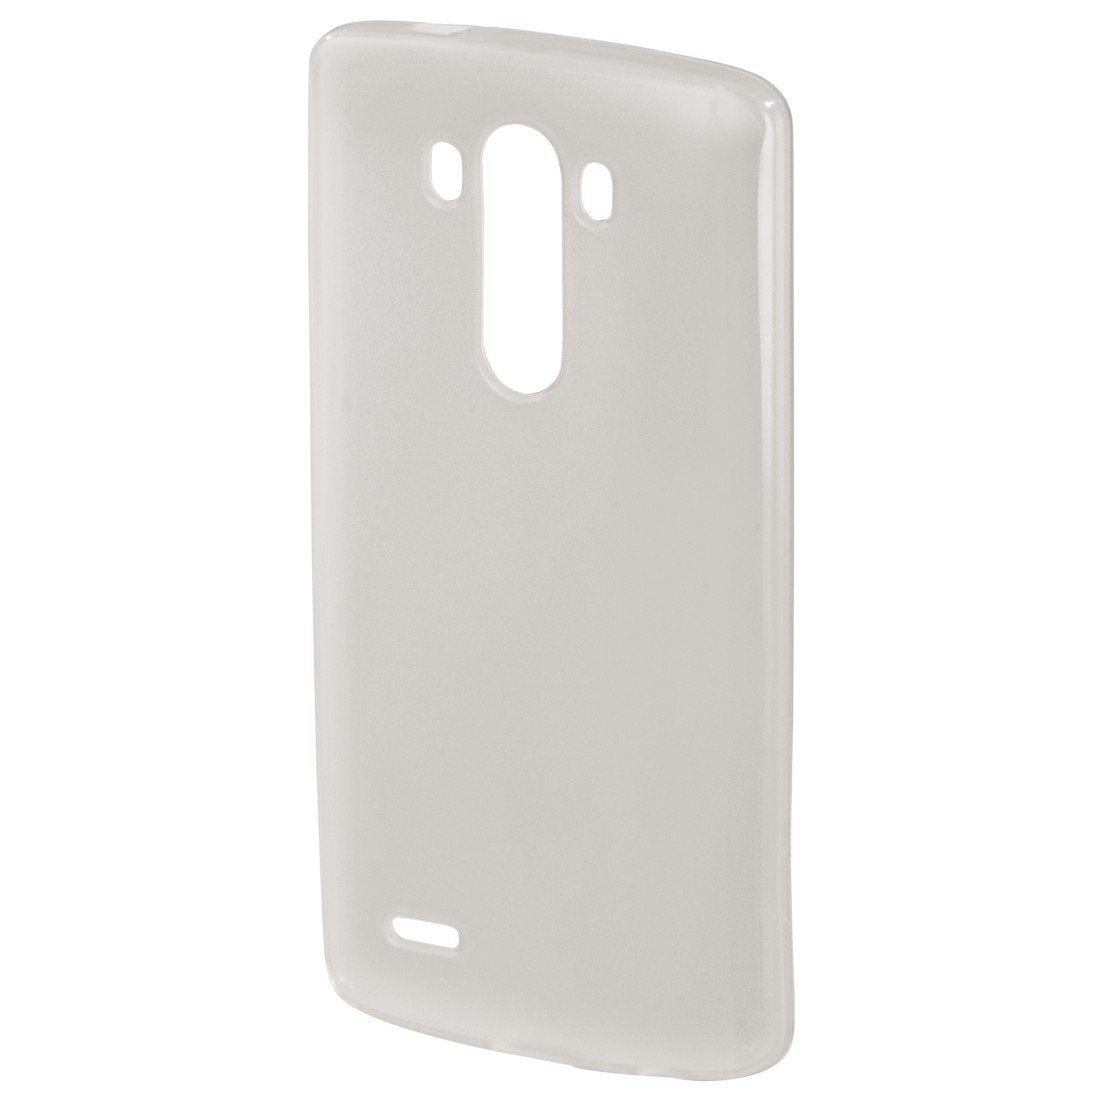 Hama Cover Crystal für LG G3, Transparent